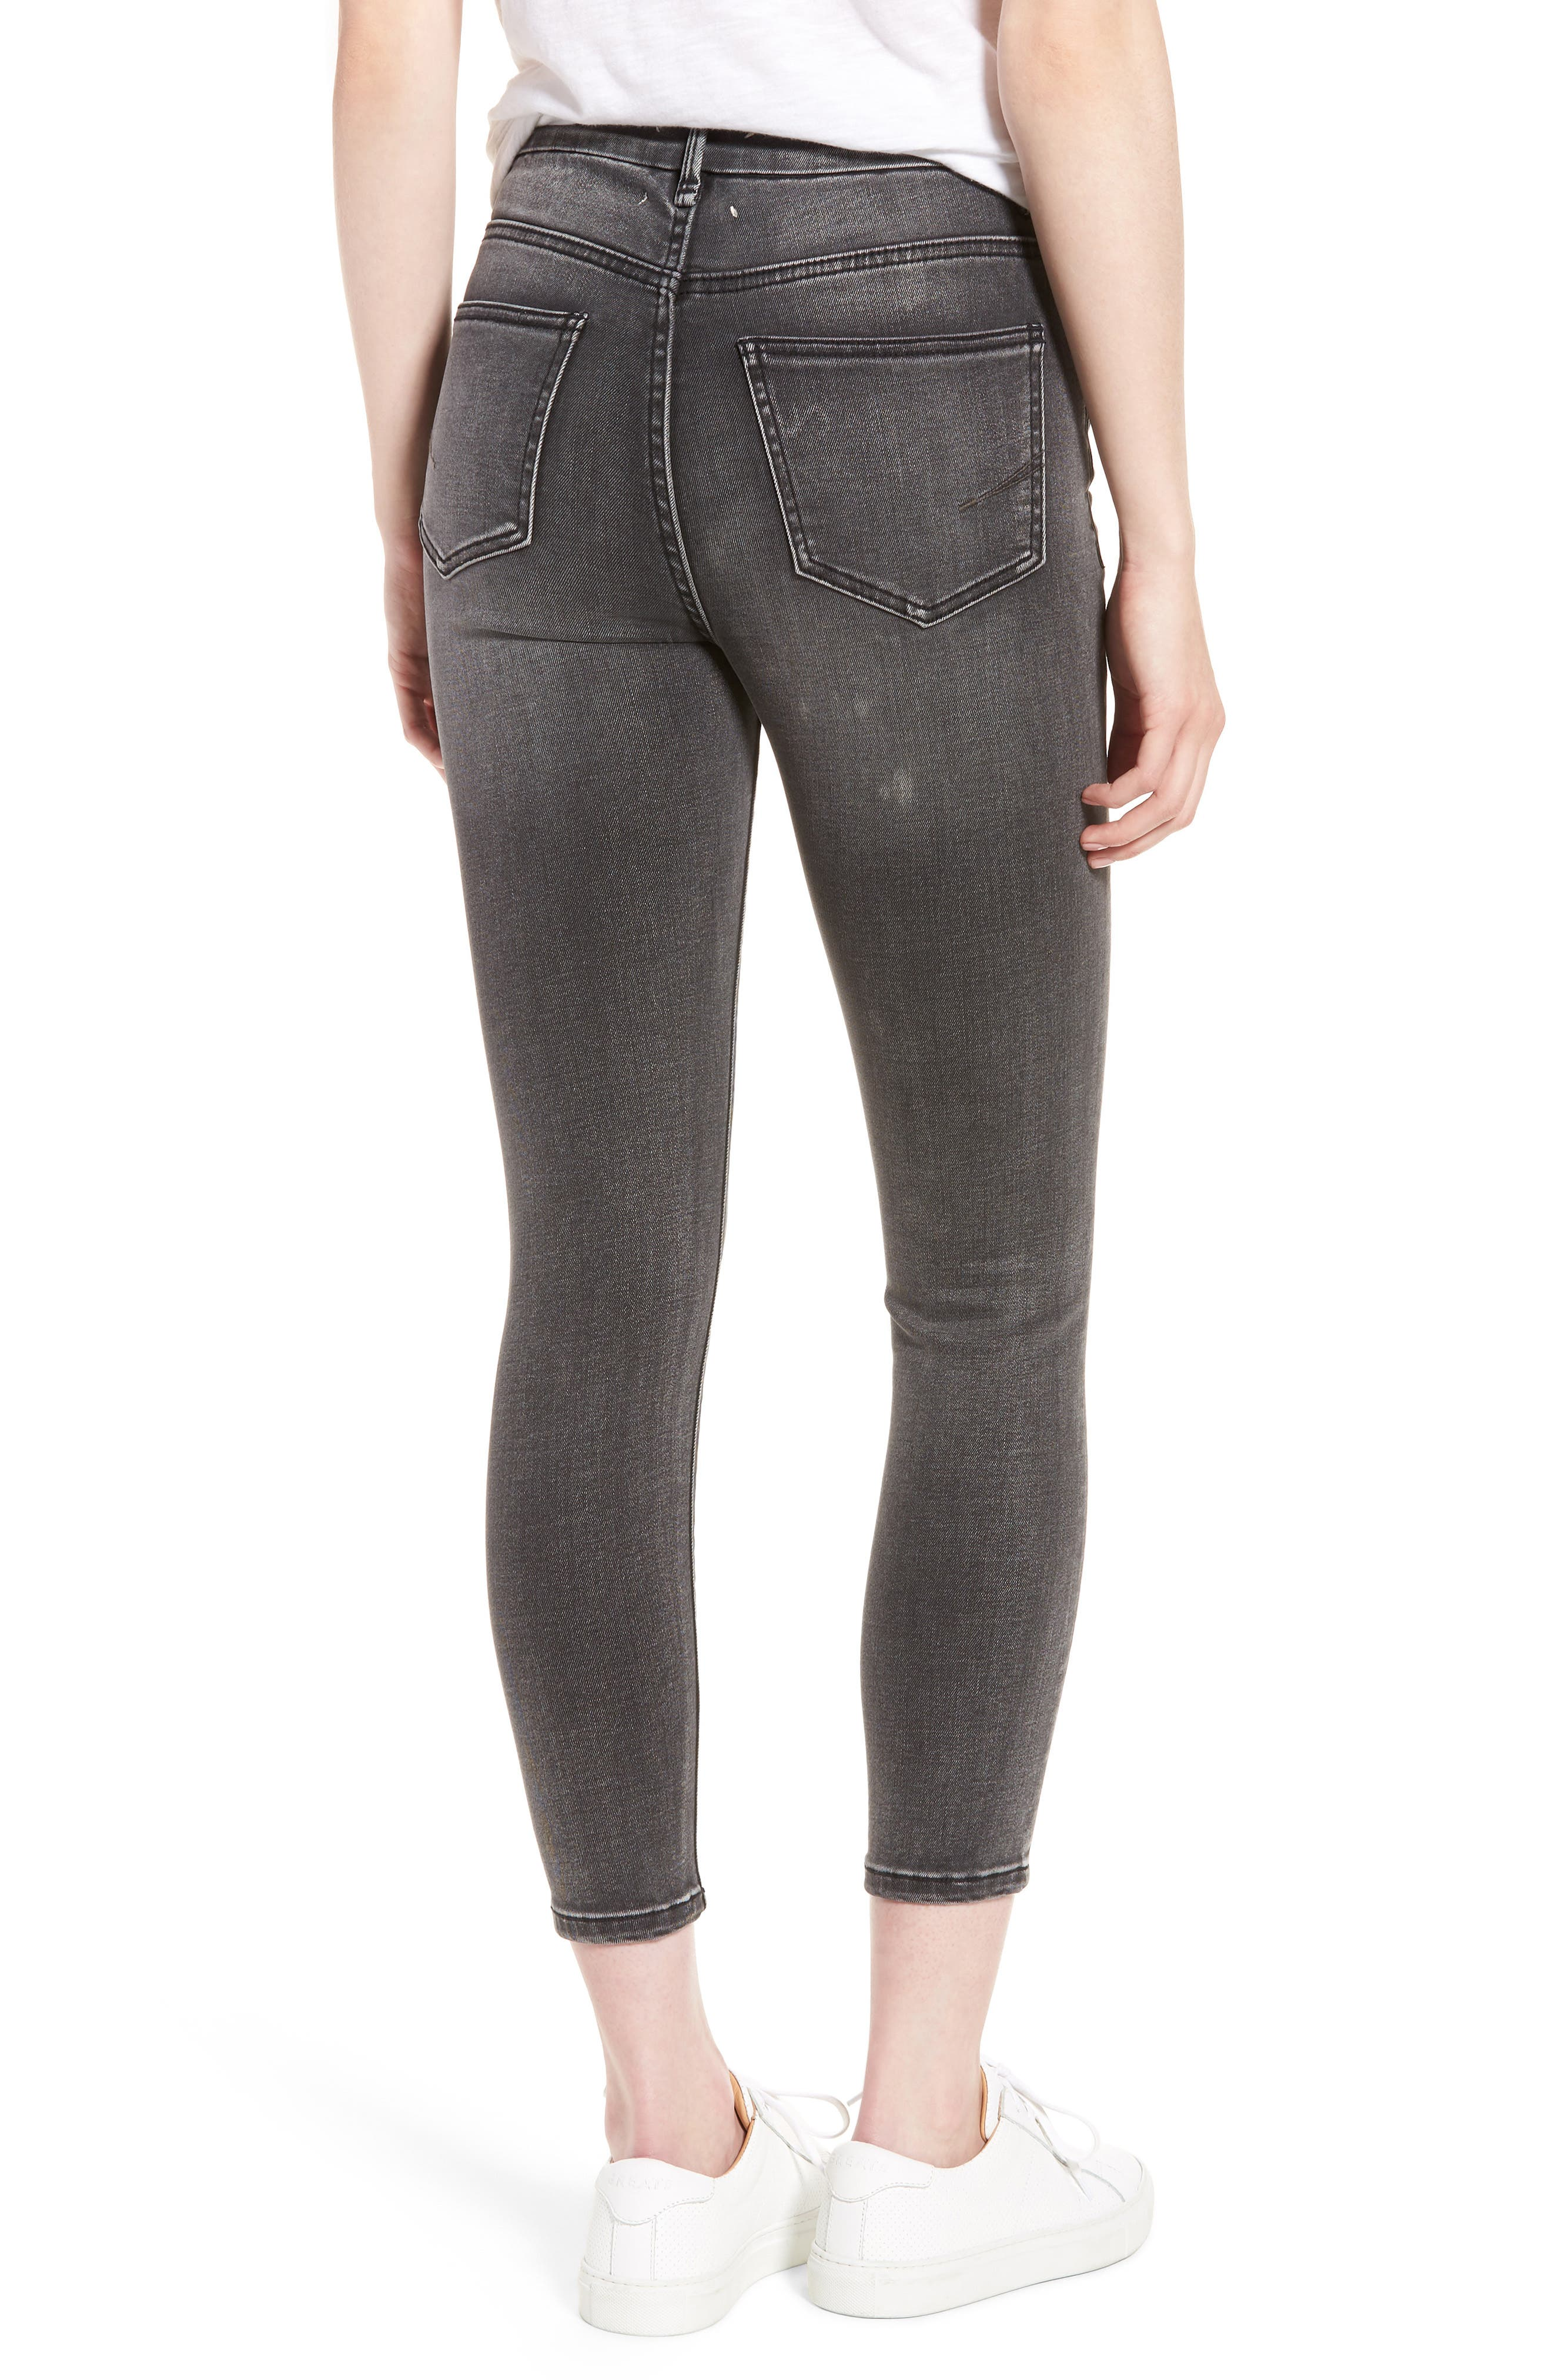 Cressa High Rise Ankle Skinny Jeans,                             Alternate thumbnail 2, color,                             Obsidian